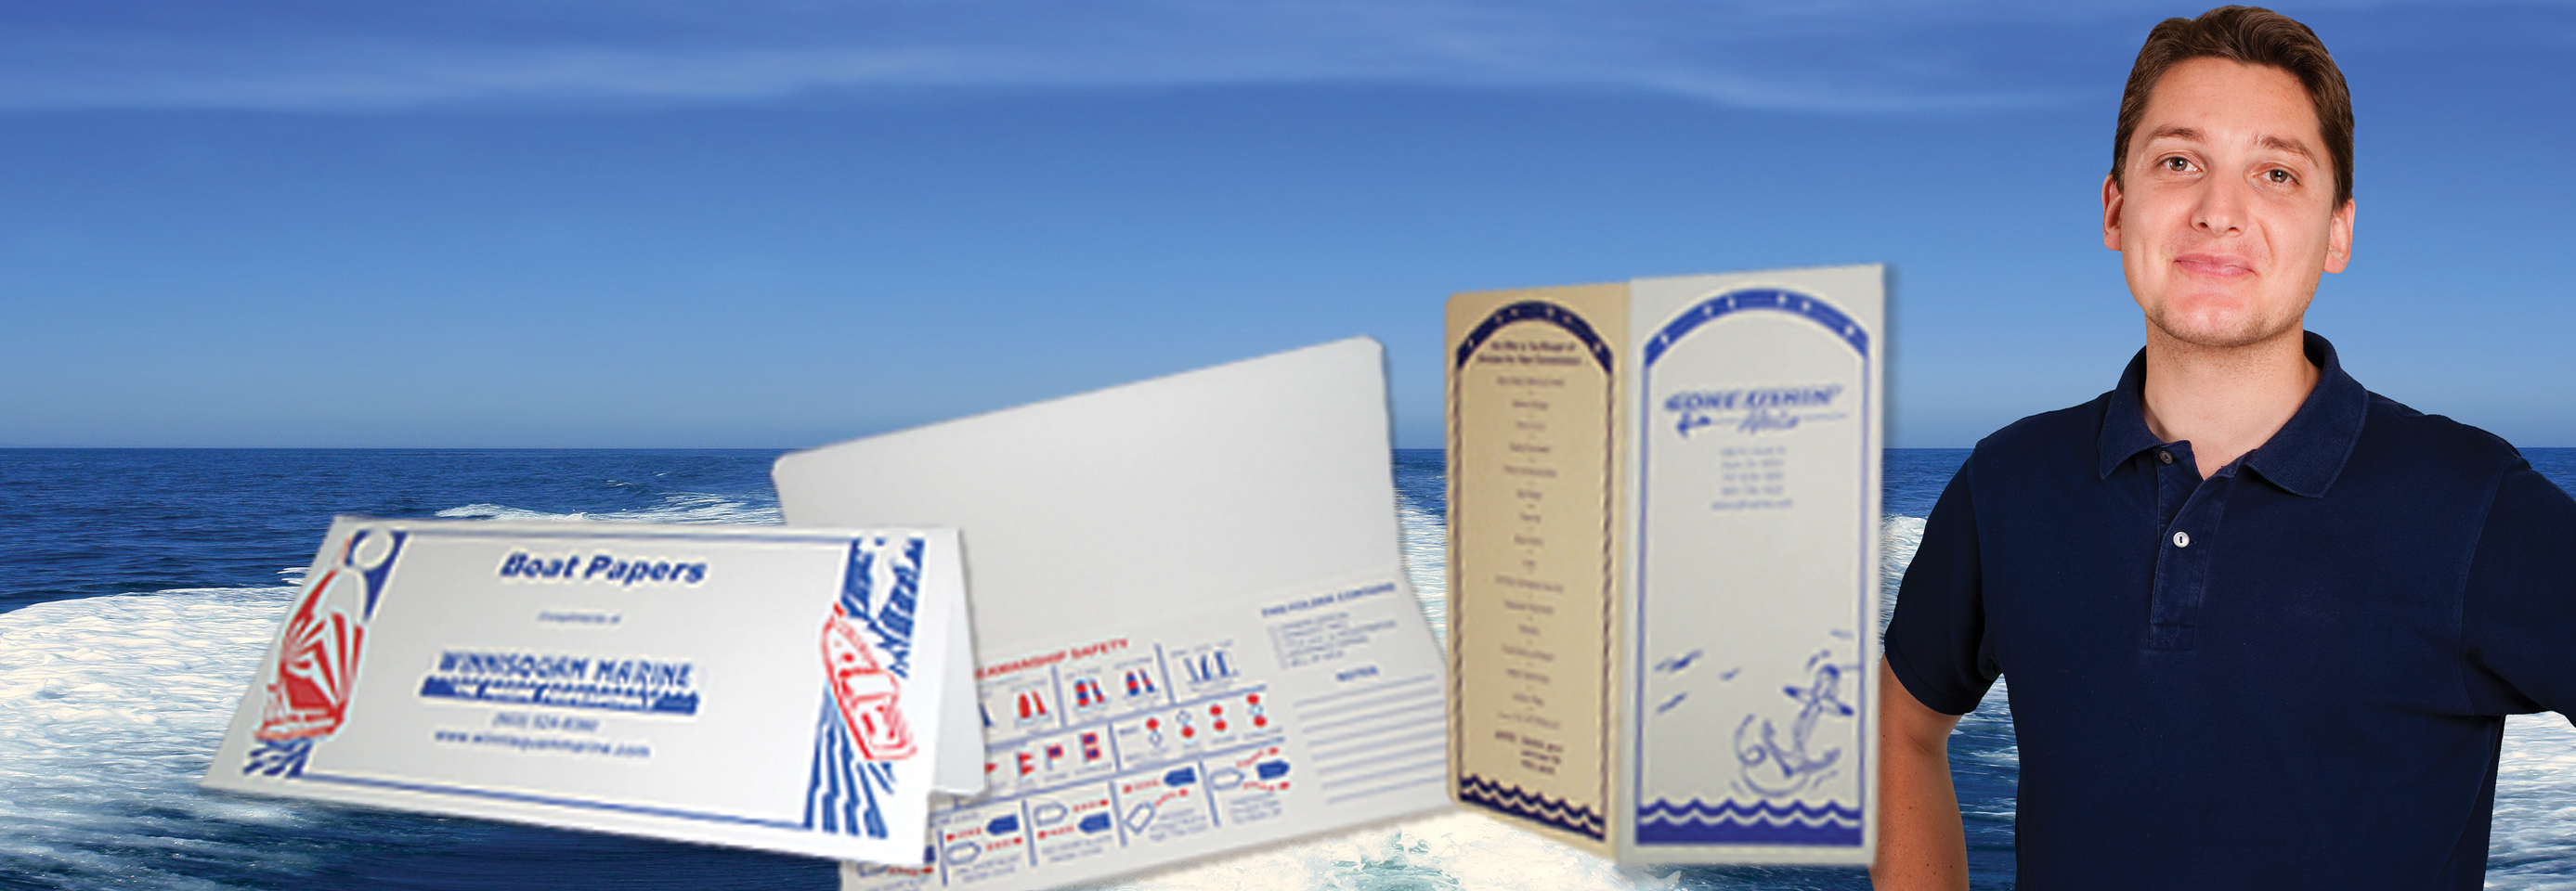 boat-folders-presentation-marina-receipt